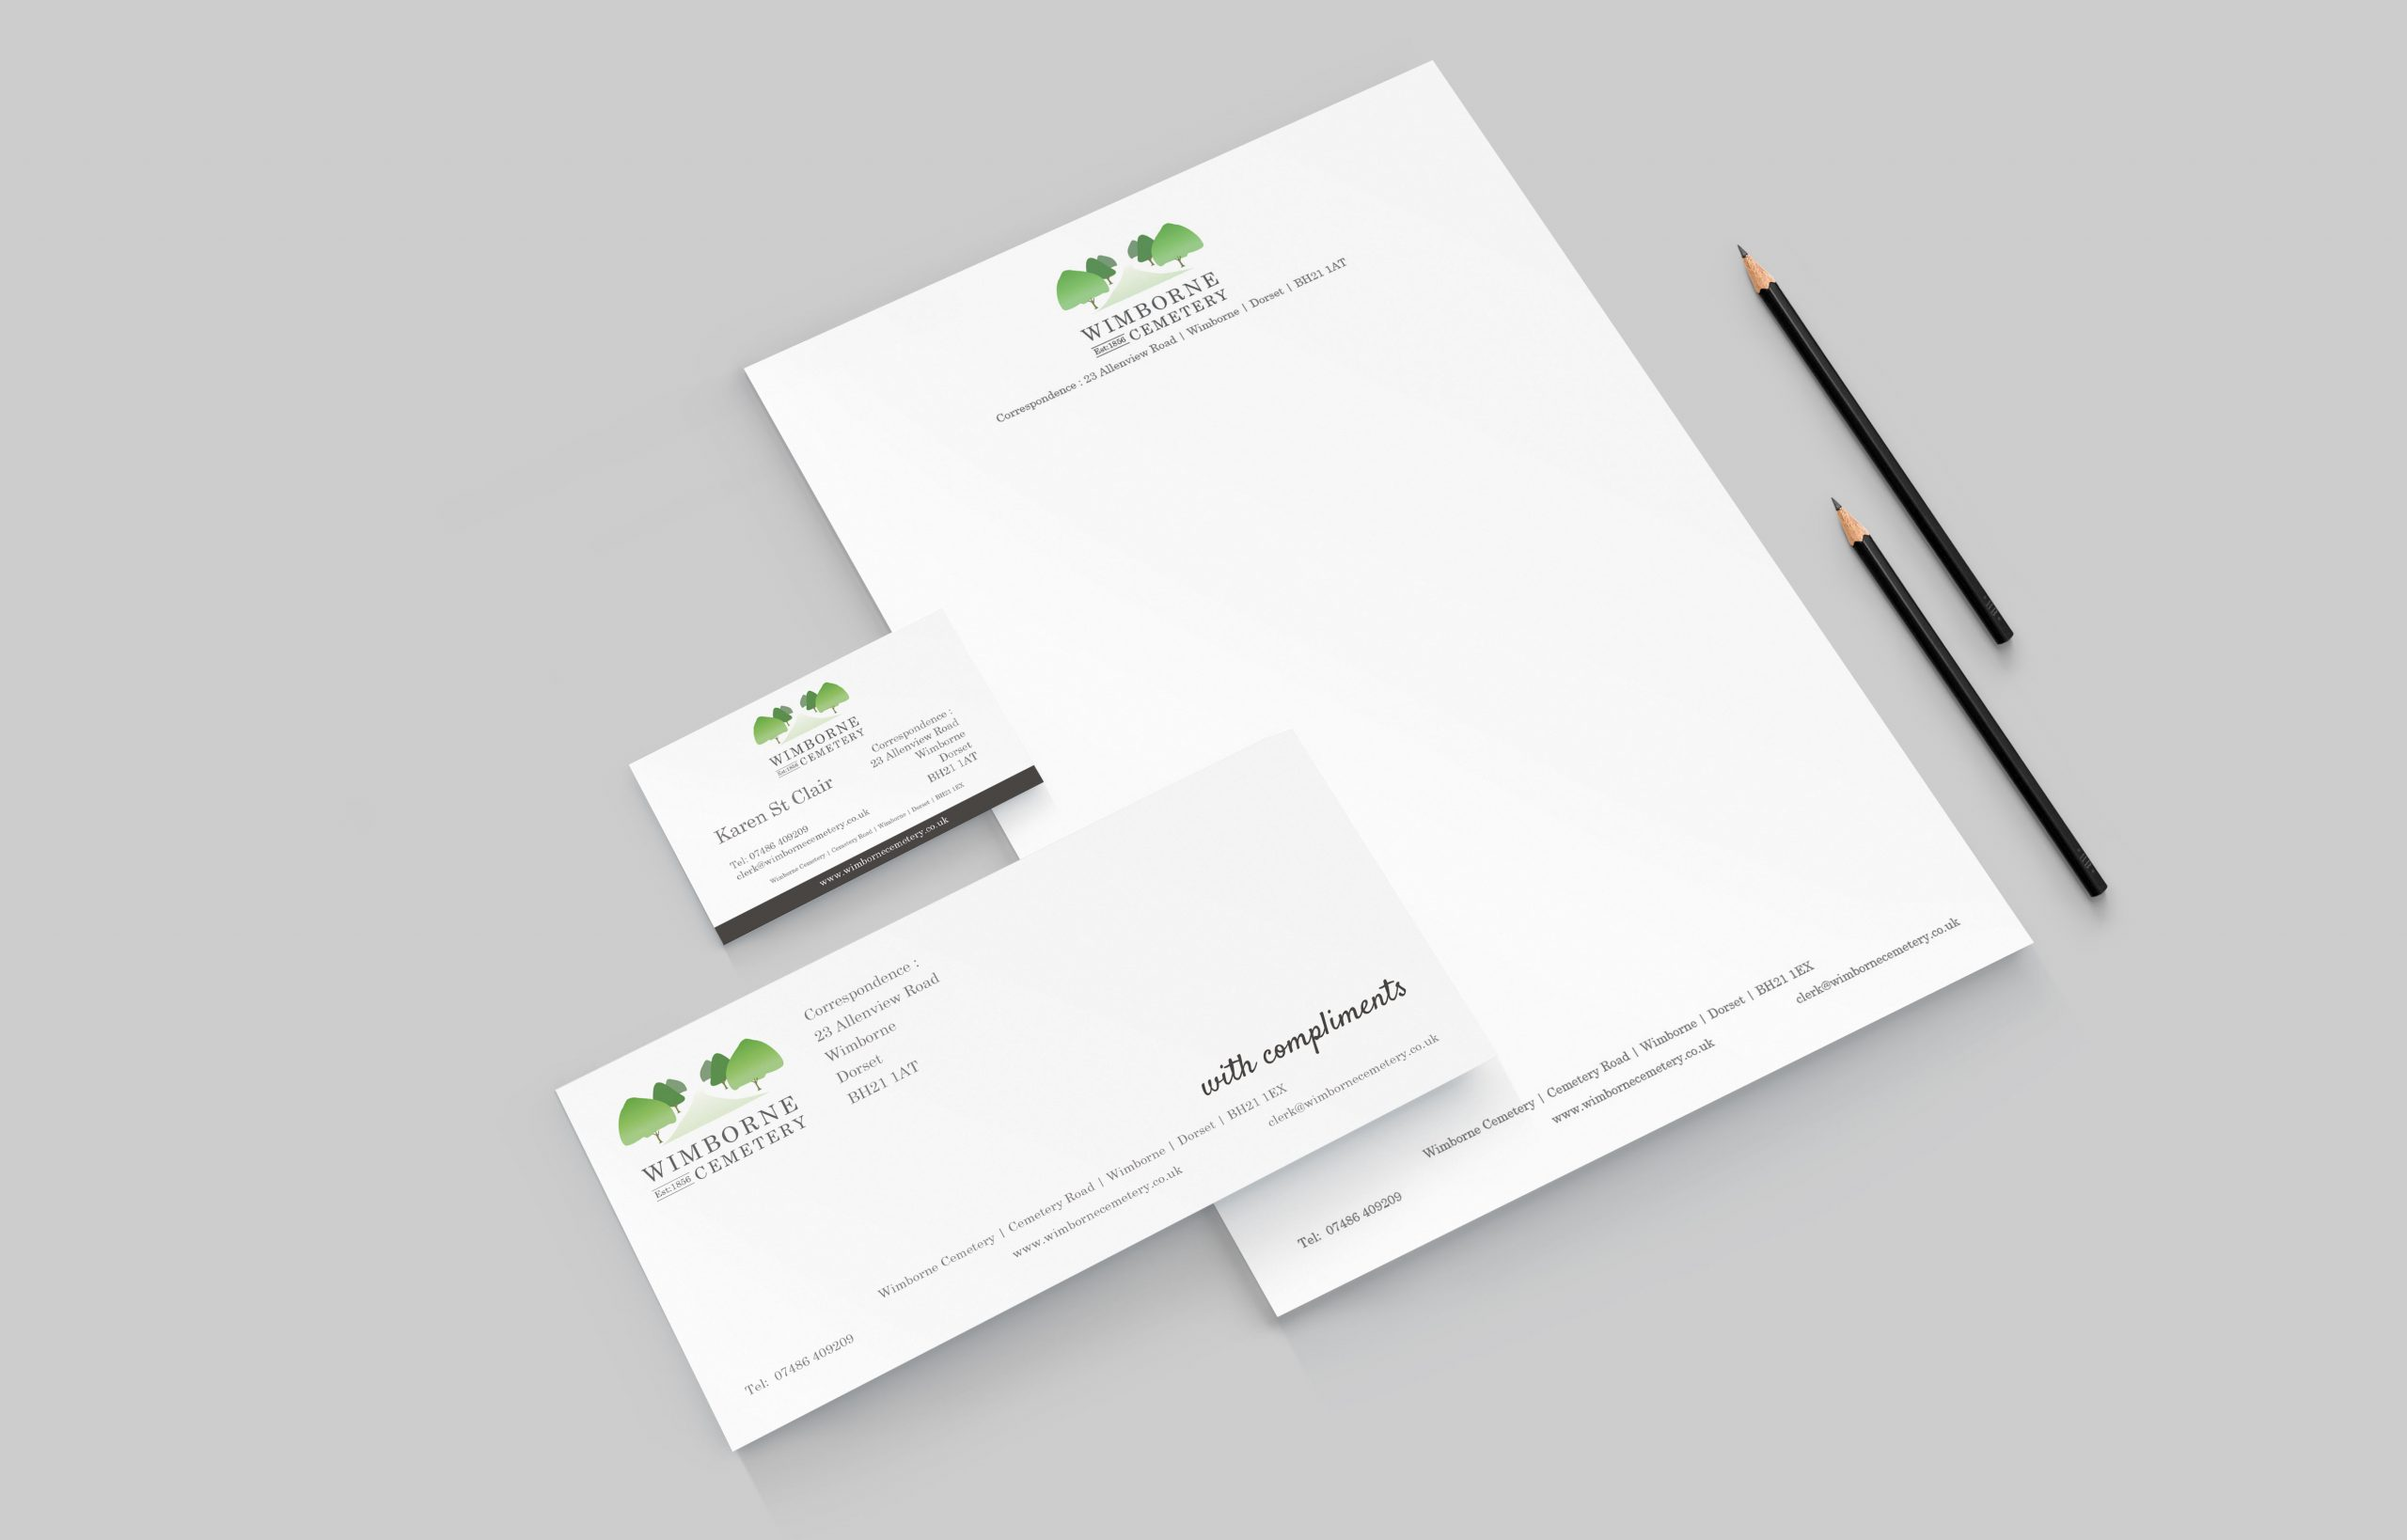 Business stationery & logo design created for Wimborne Cemetery